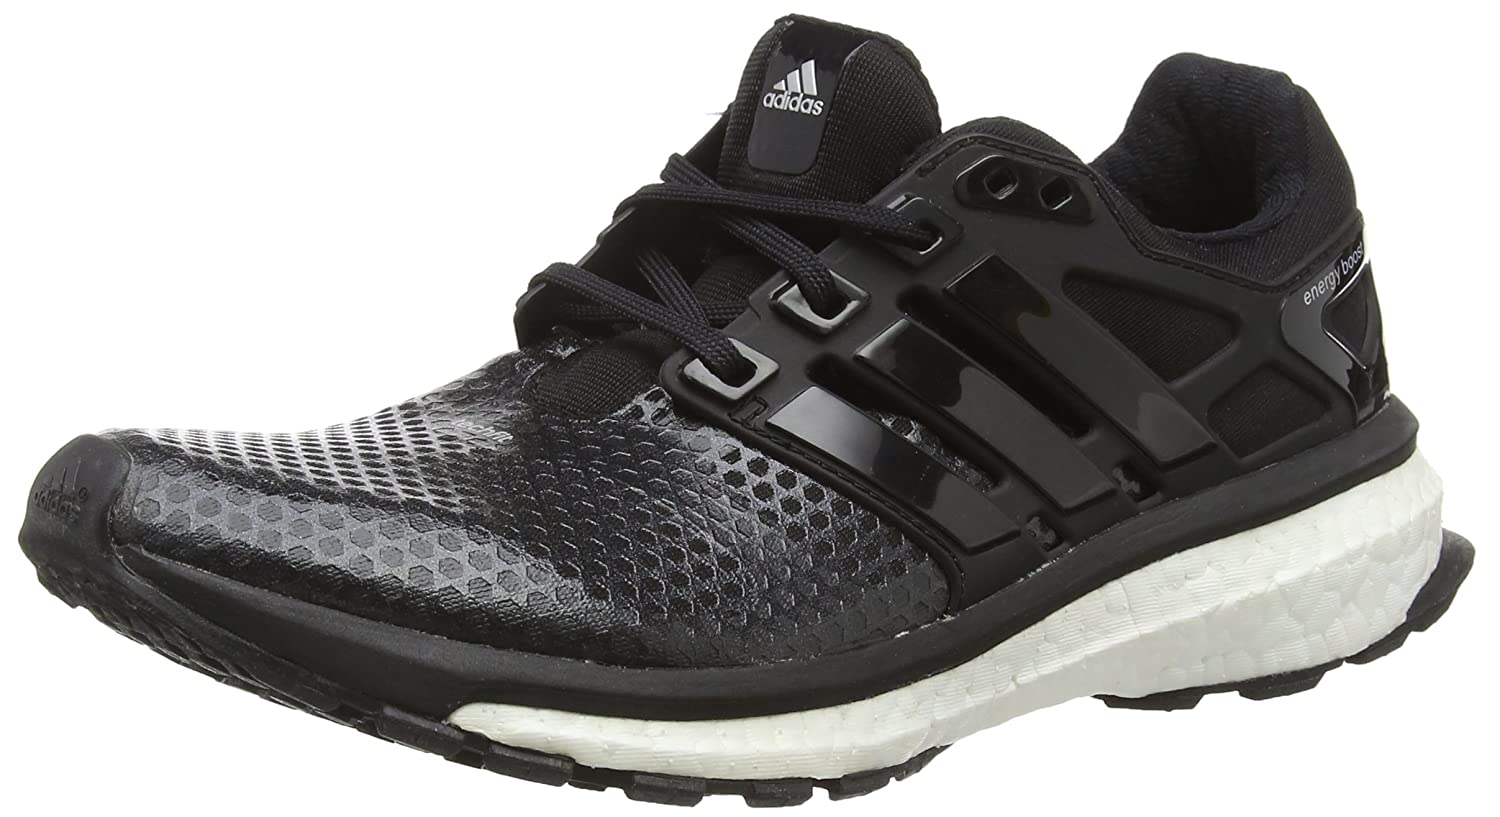 new style 9b86b 666e2 Amazon.com  adidas Energy Boost 2 ATR Running Shoes - 11.5 - Black   Running